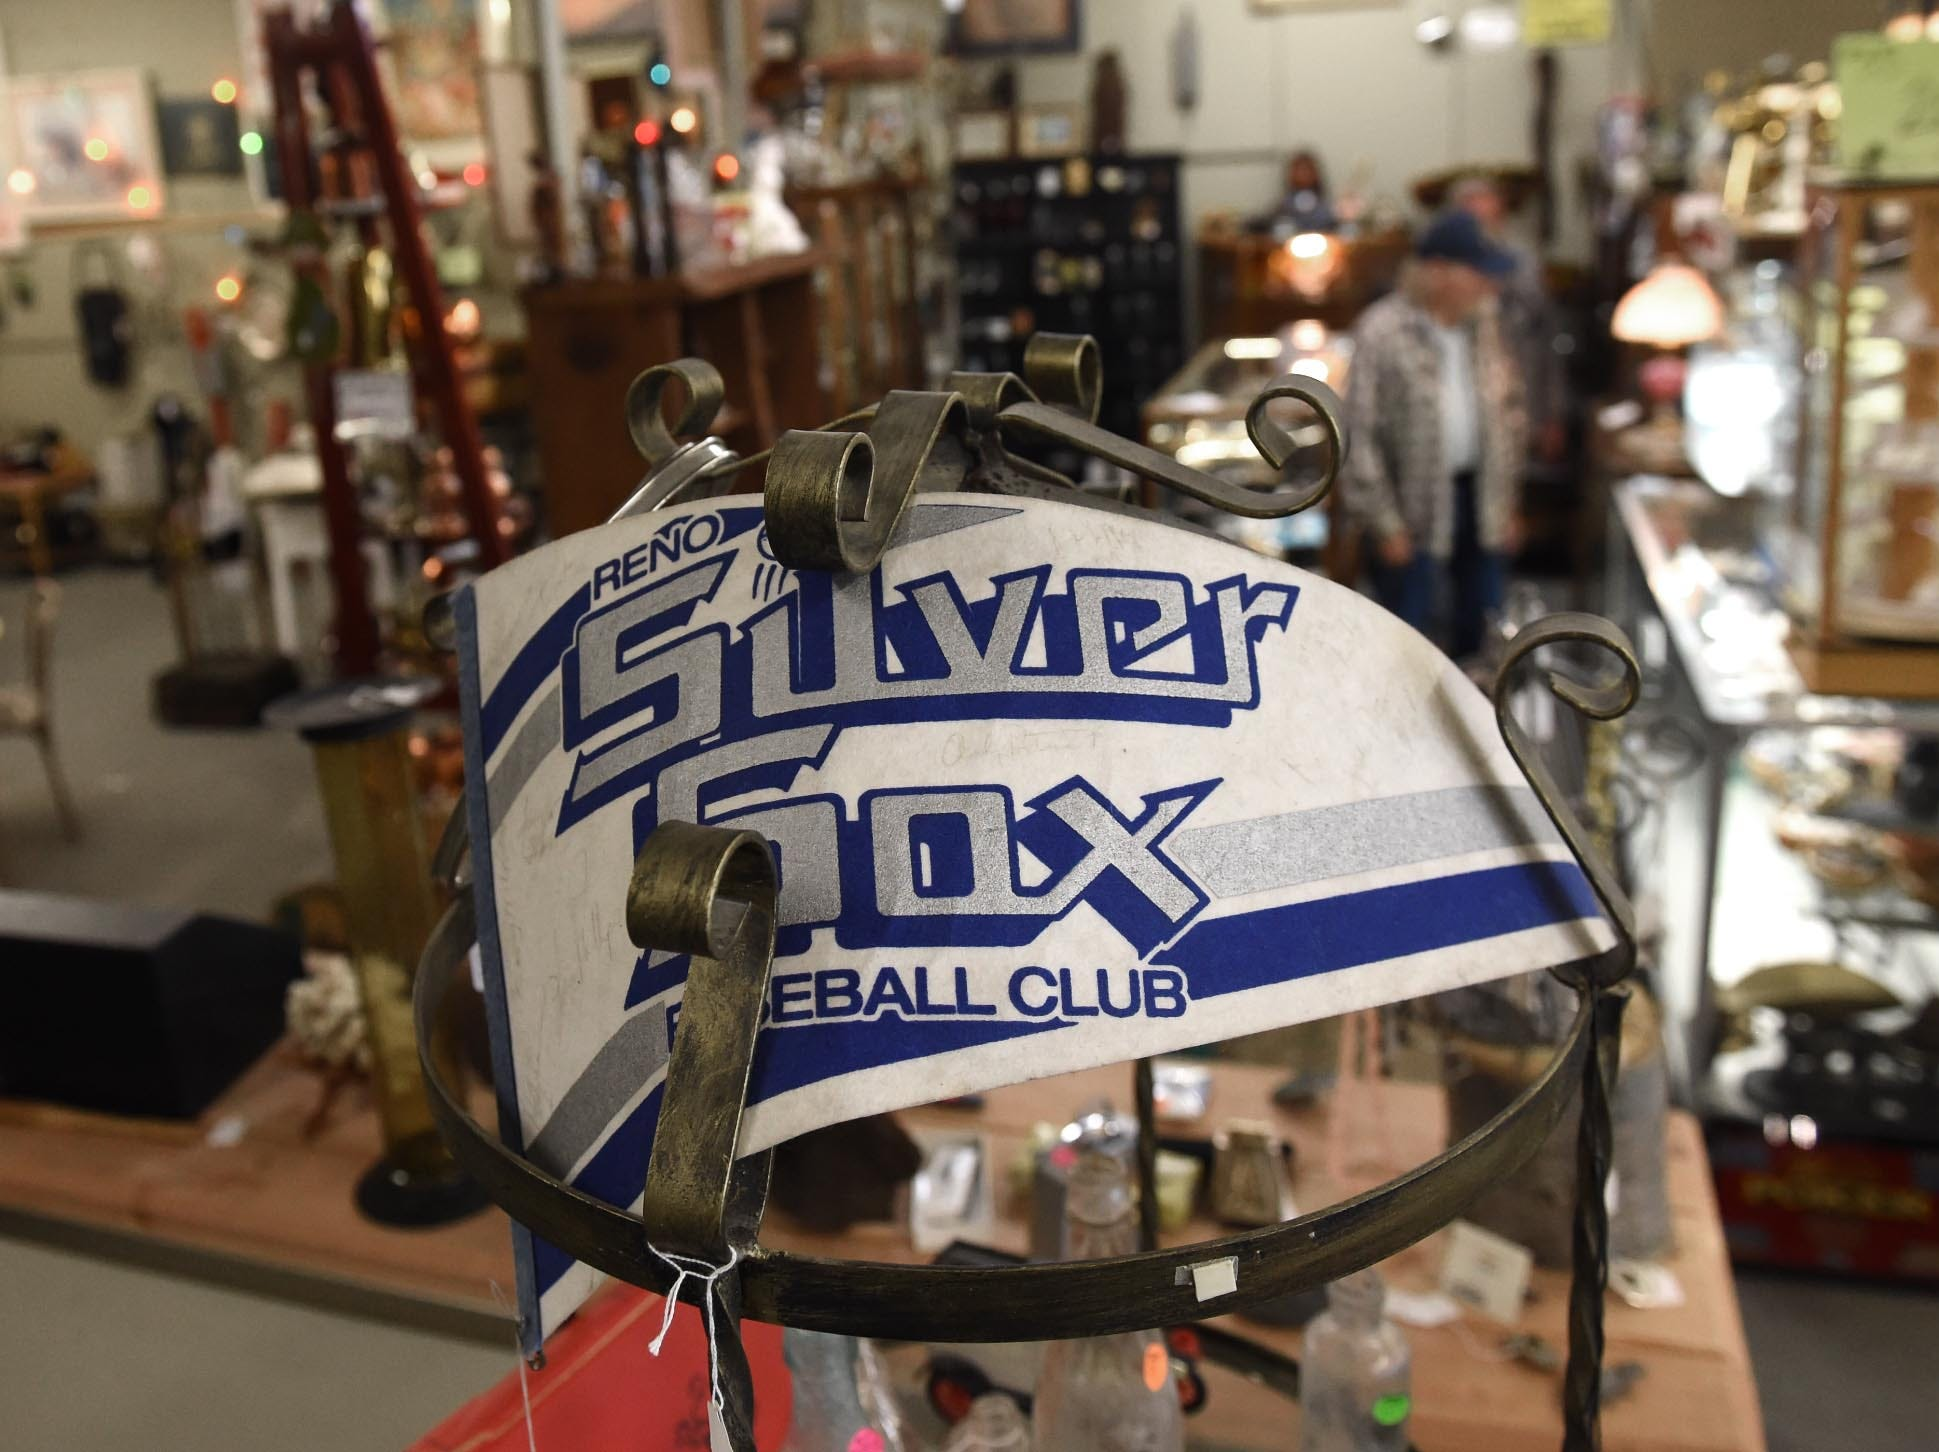 Images of items on sale at the Virginia Street Antique Mall, which is closing its doors at the Virginia Street location after 26 years.